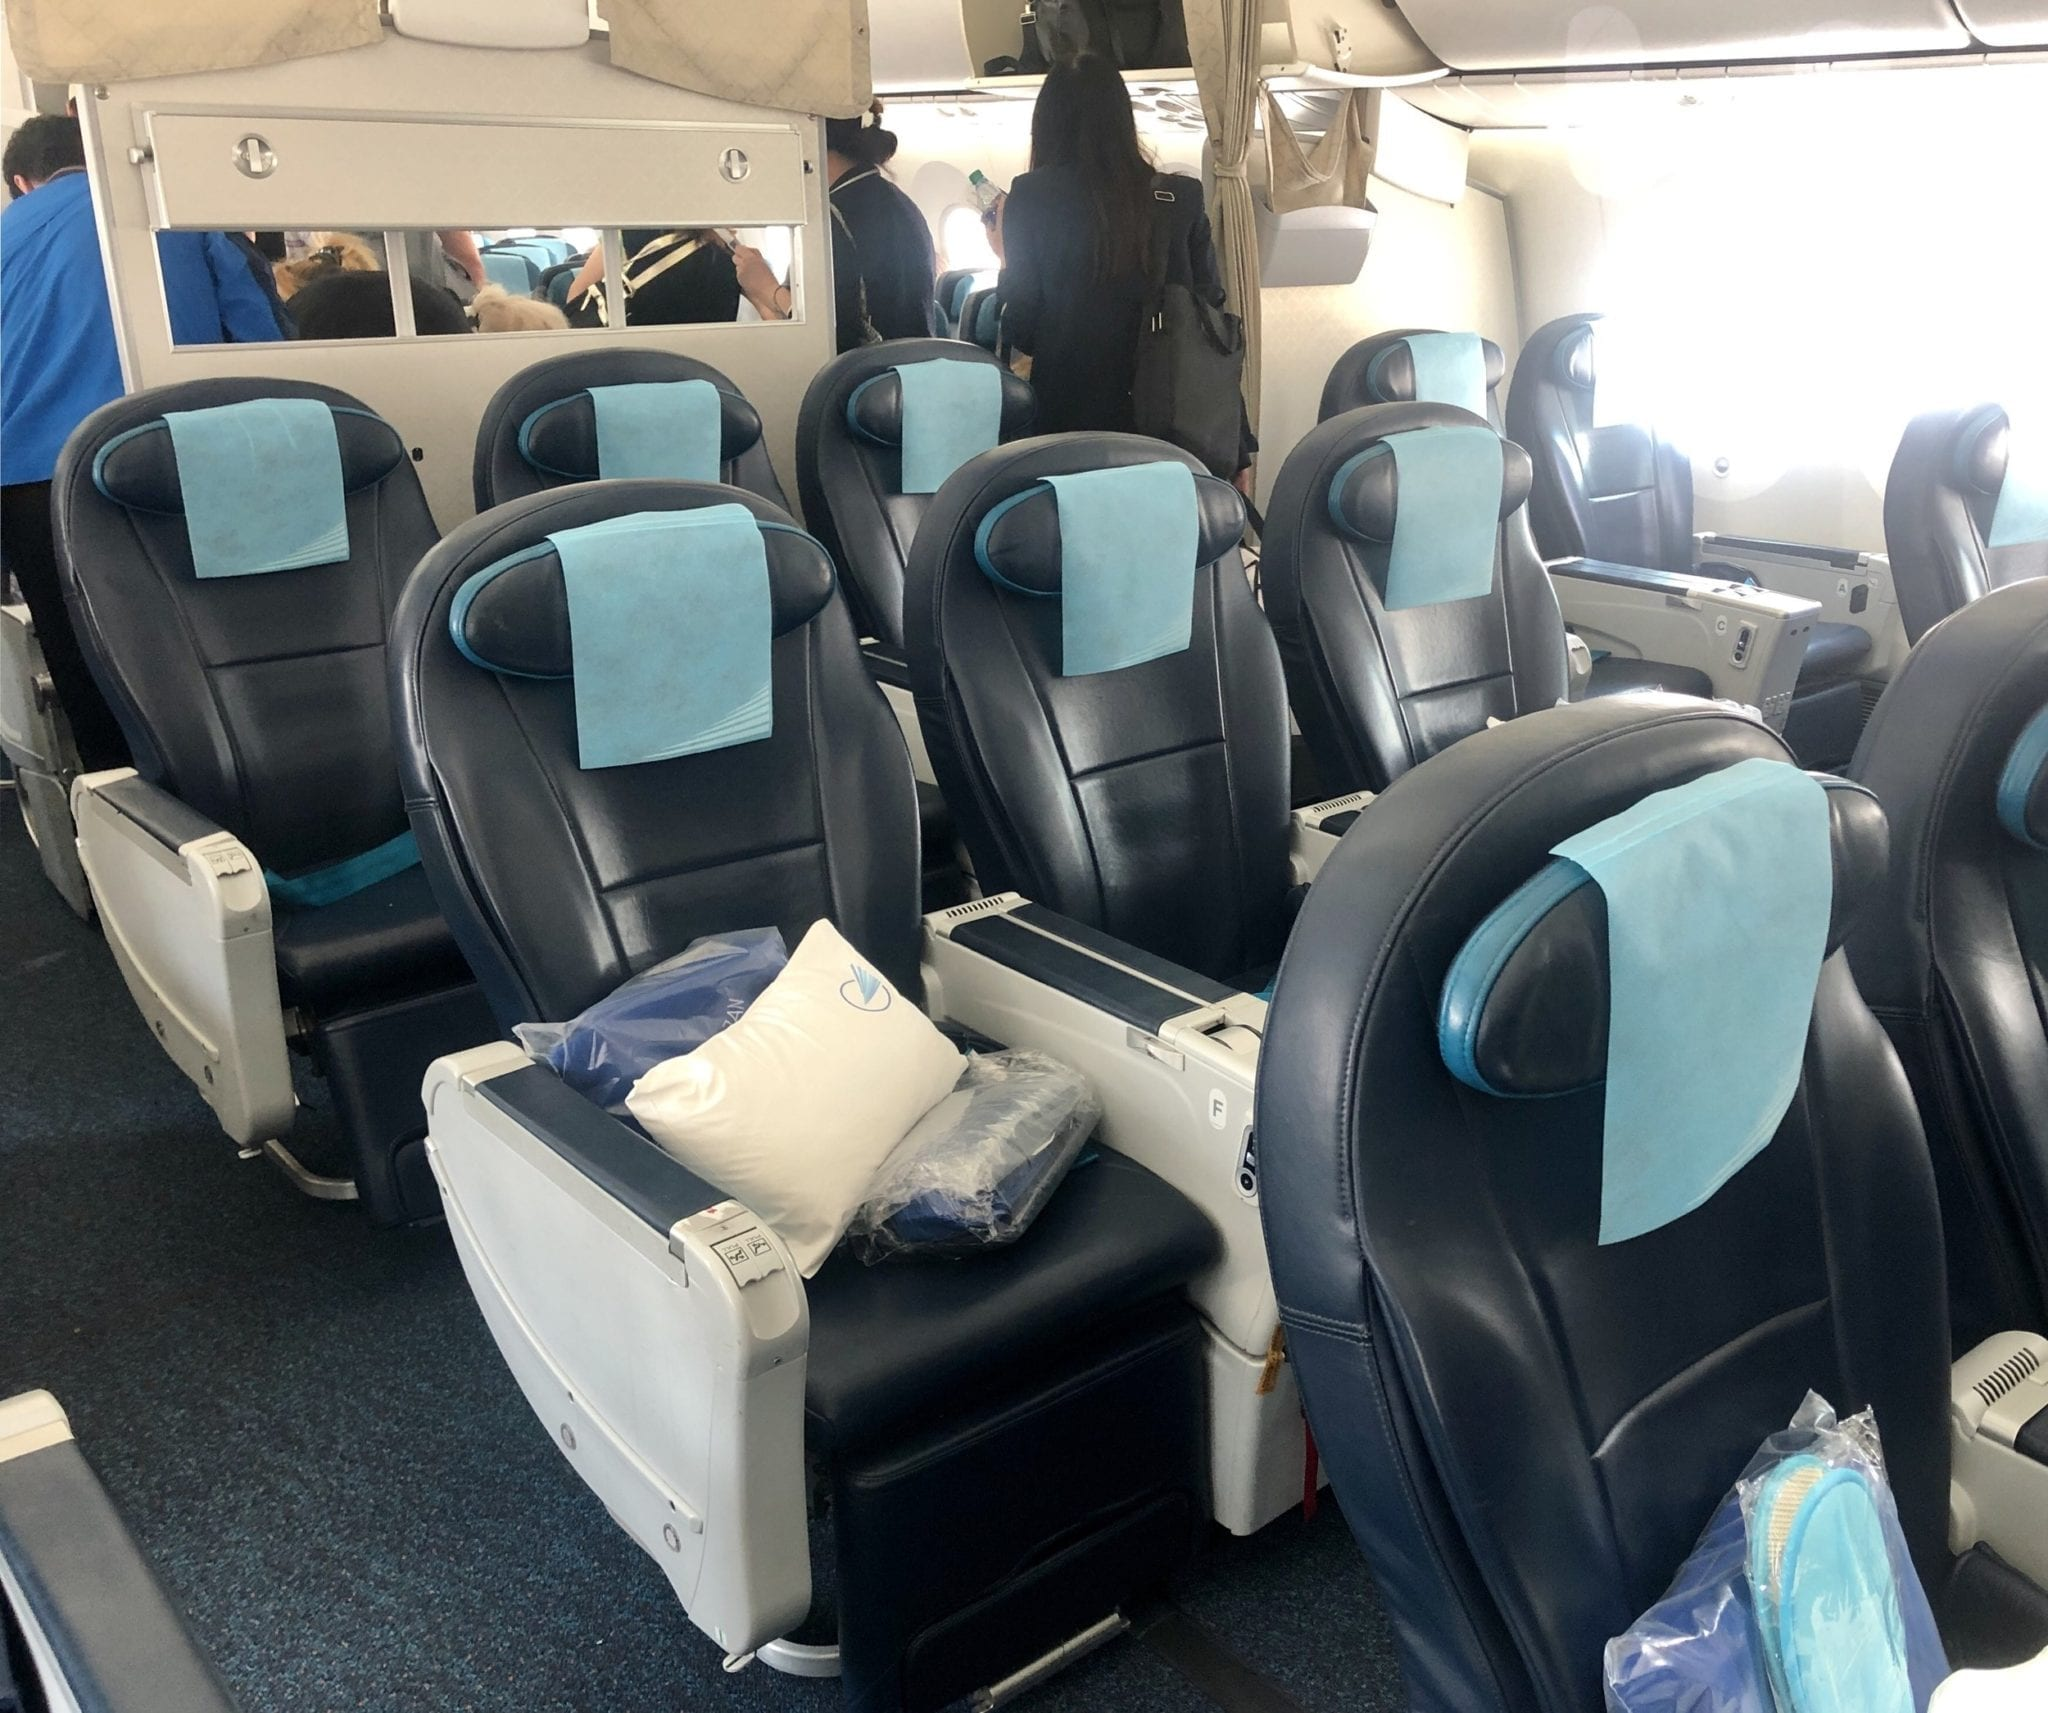 Inside view of an Azerbaijan Airlines flight, Comfort Club. Larger dark blue metal seats separated by thick armrests with pillows and blankets.